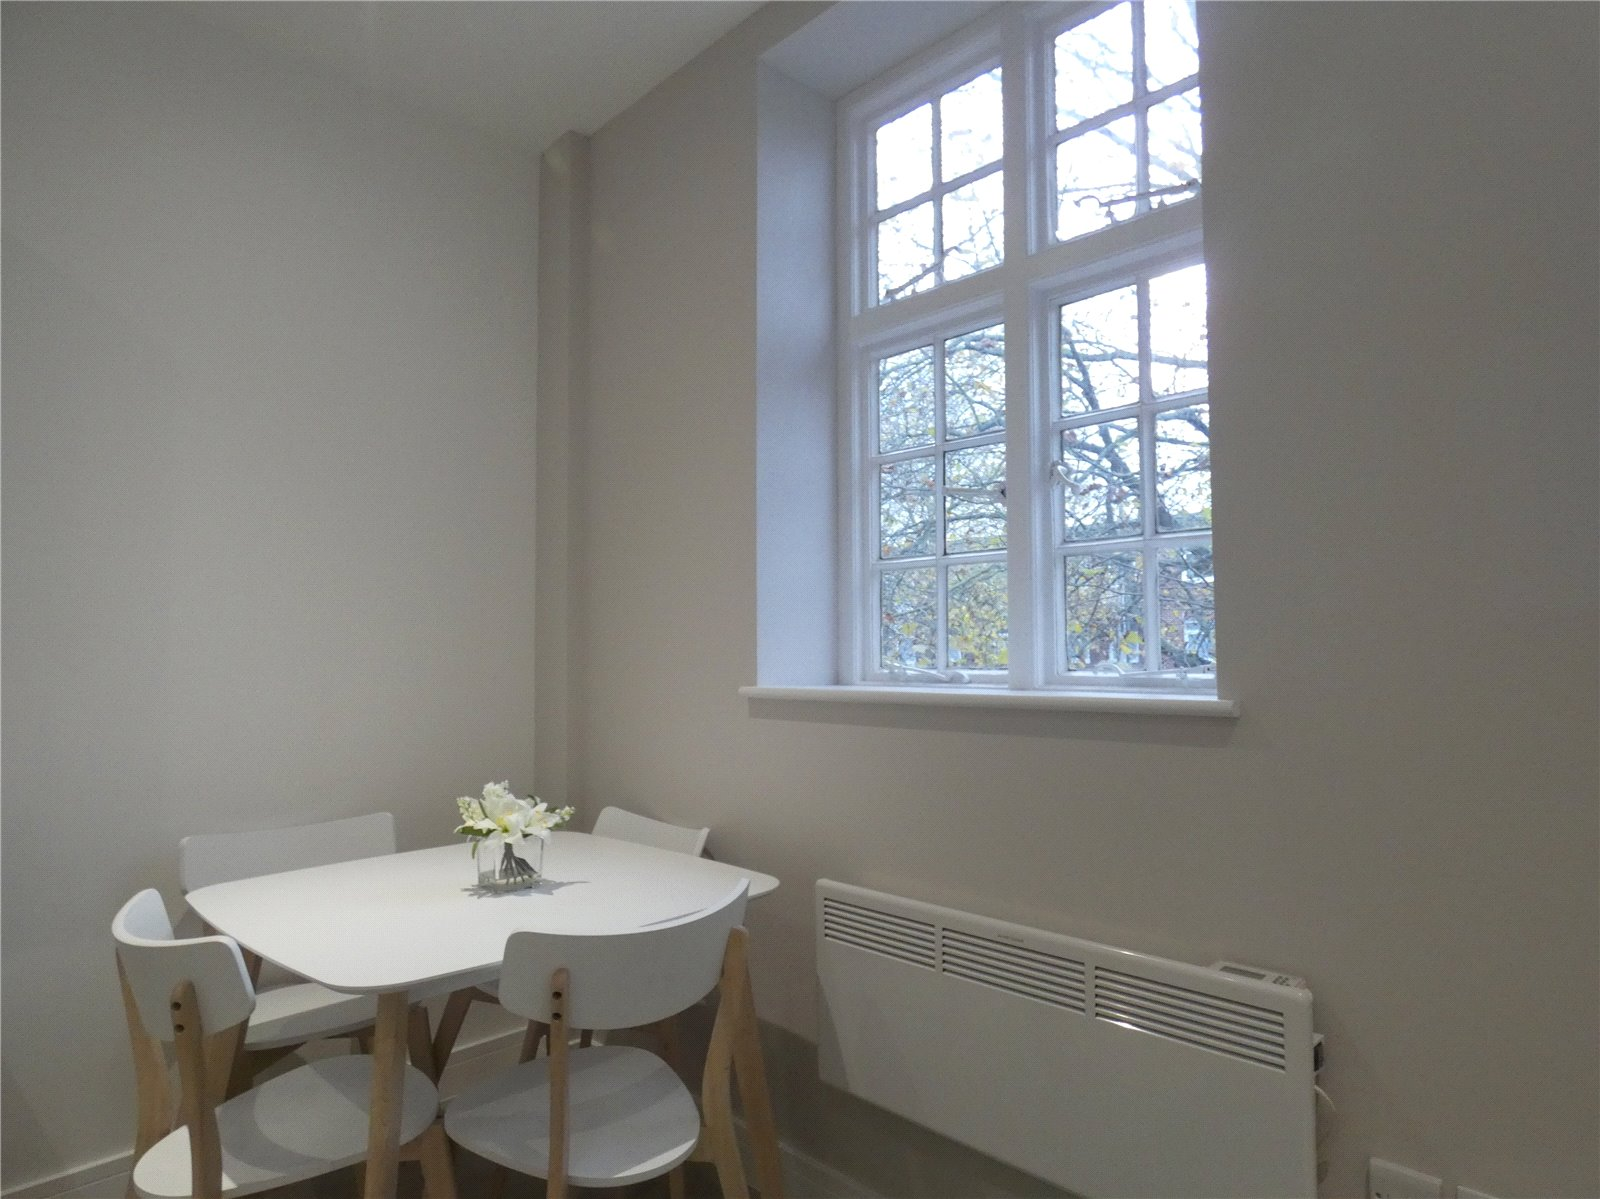 Apartment to rent in Whetstone, N20 9HW 5